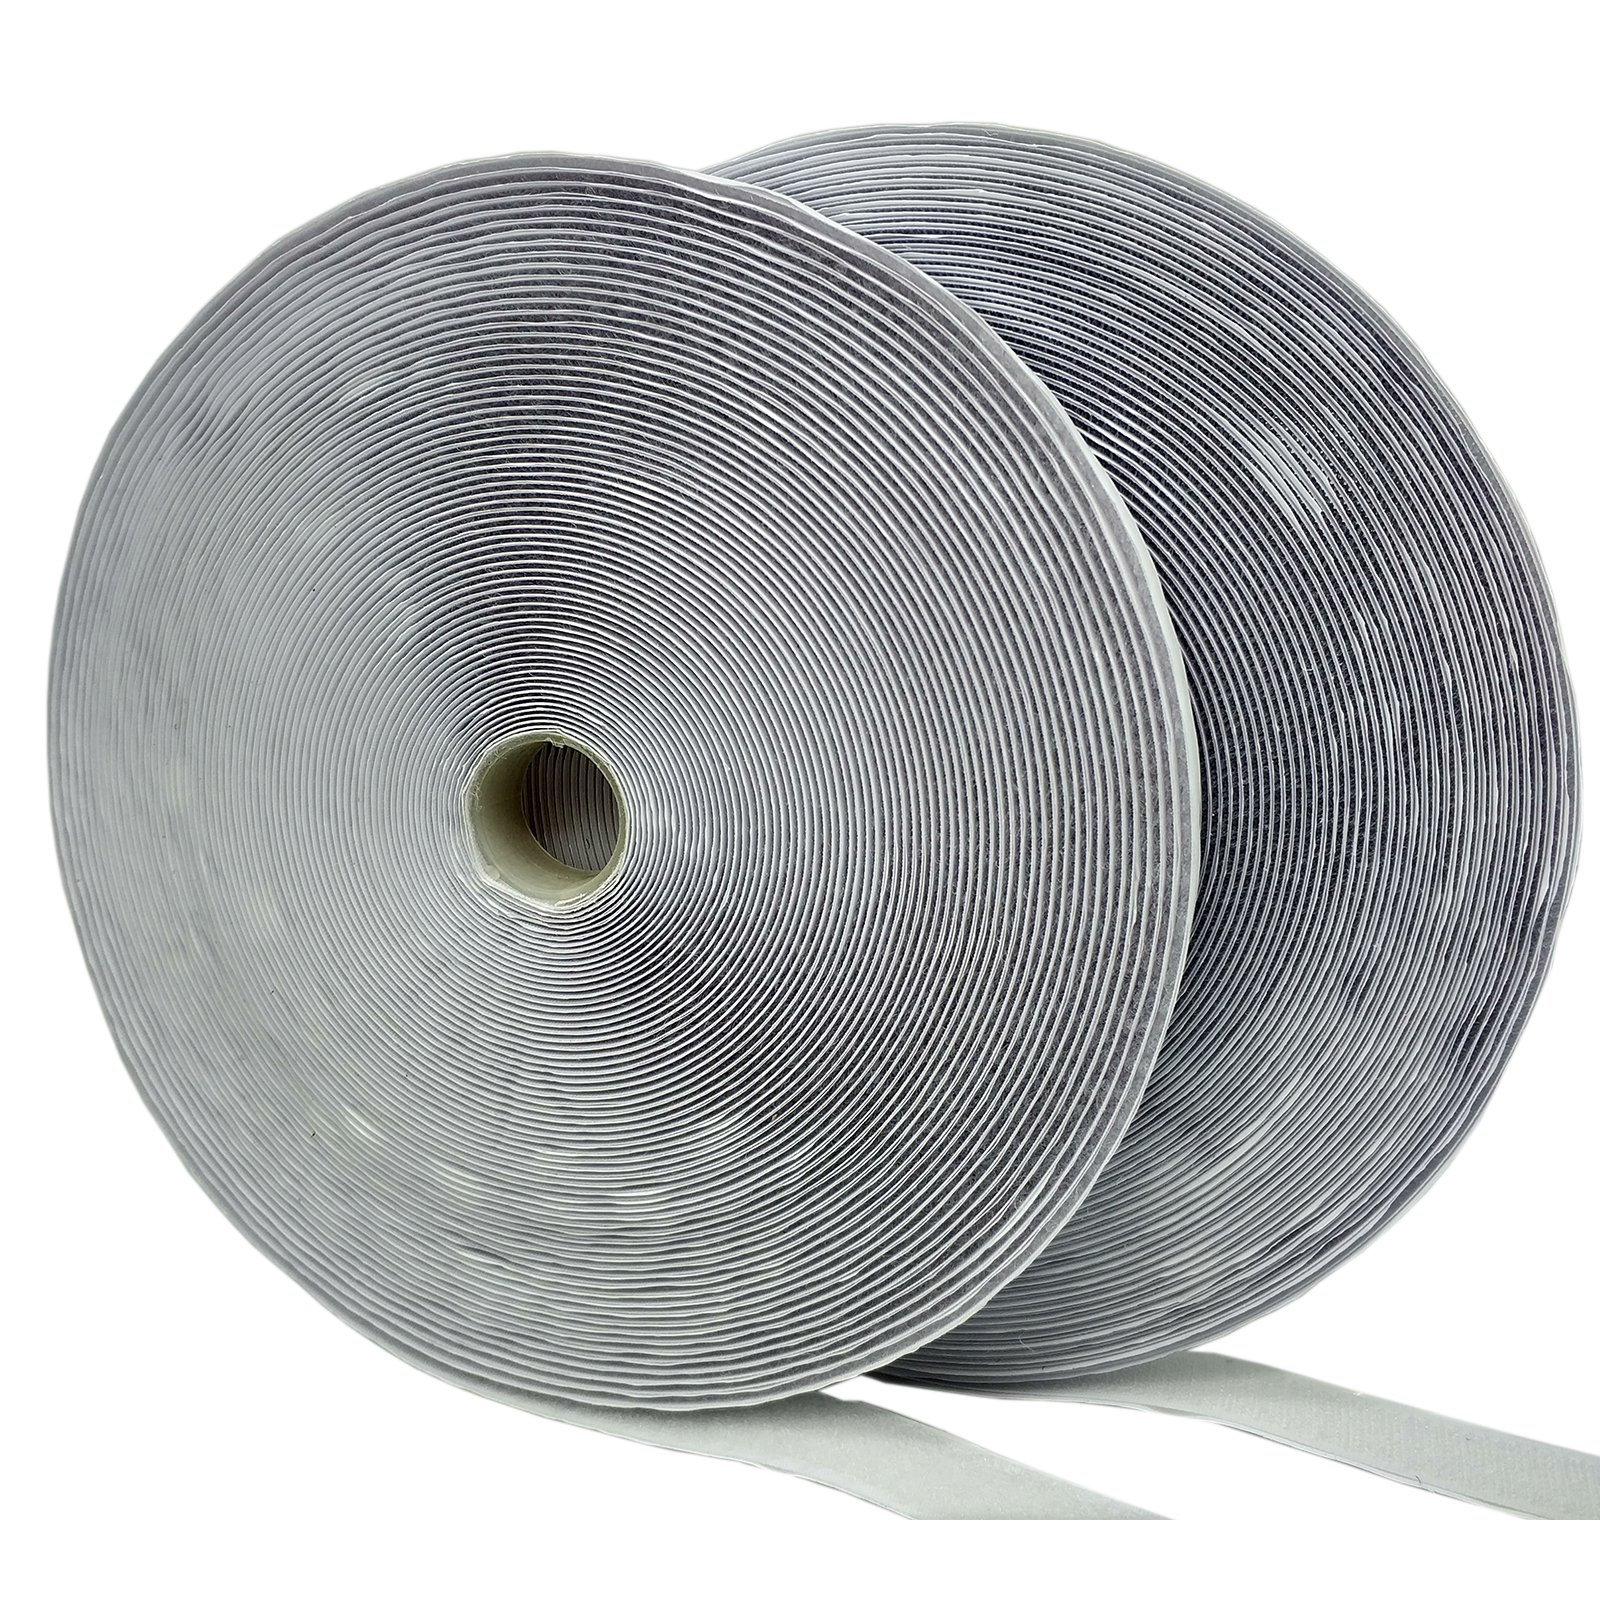 Eroilor 25 Meter (82 ft) Long 50mm (2 inch) Width Hook and Loop Tape Self-Adhesive Tape - White by Eroilor